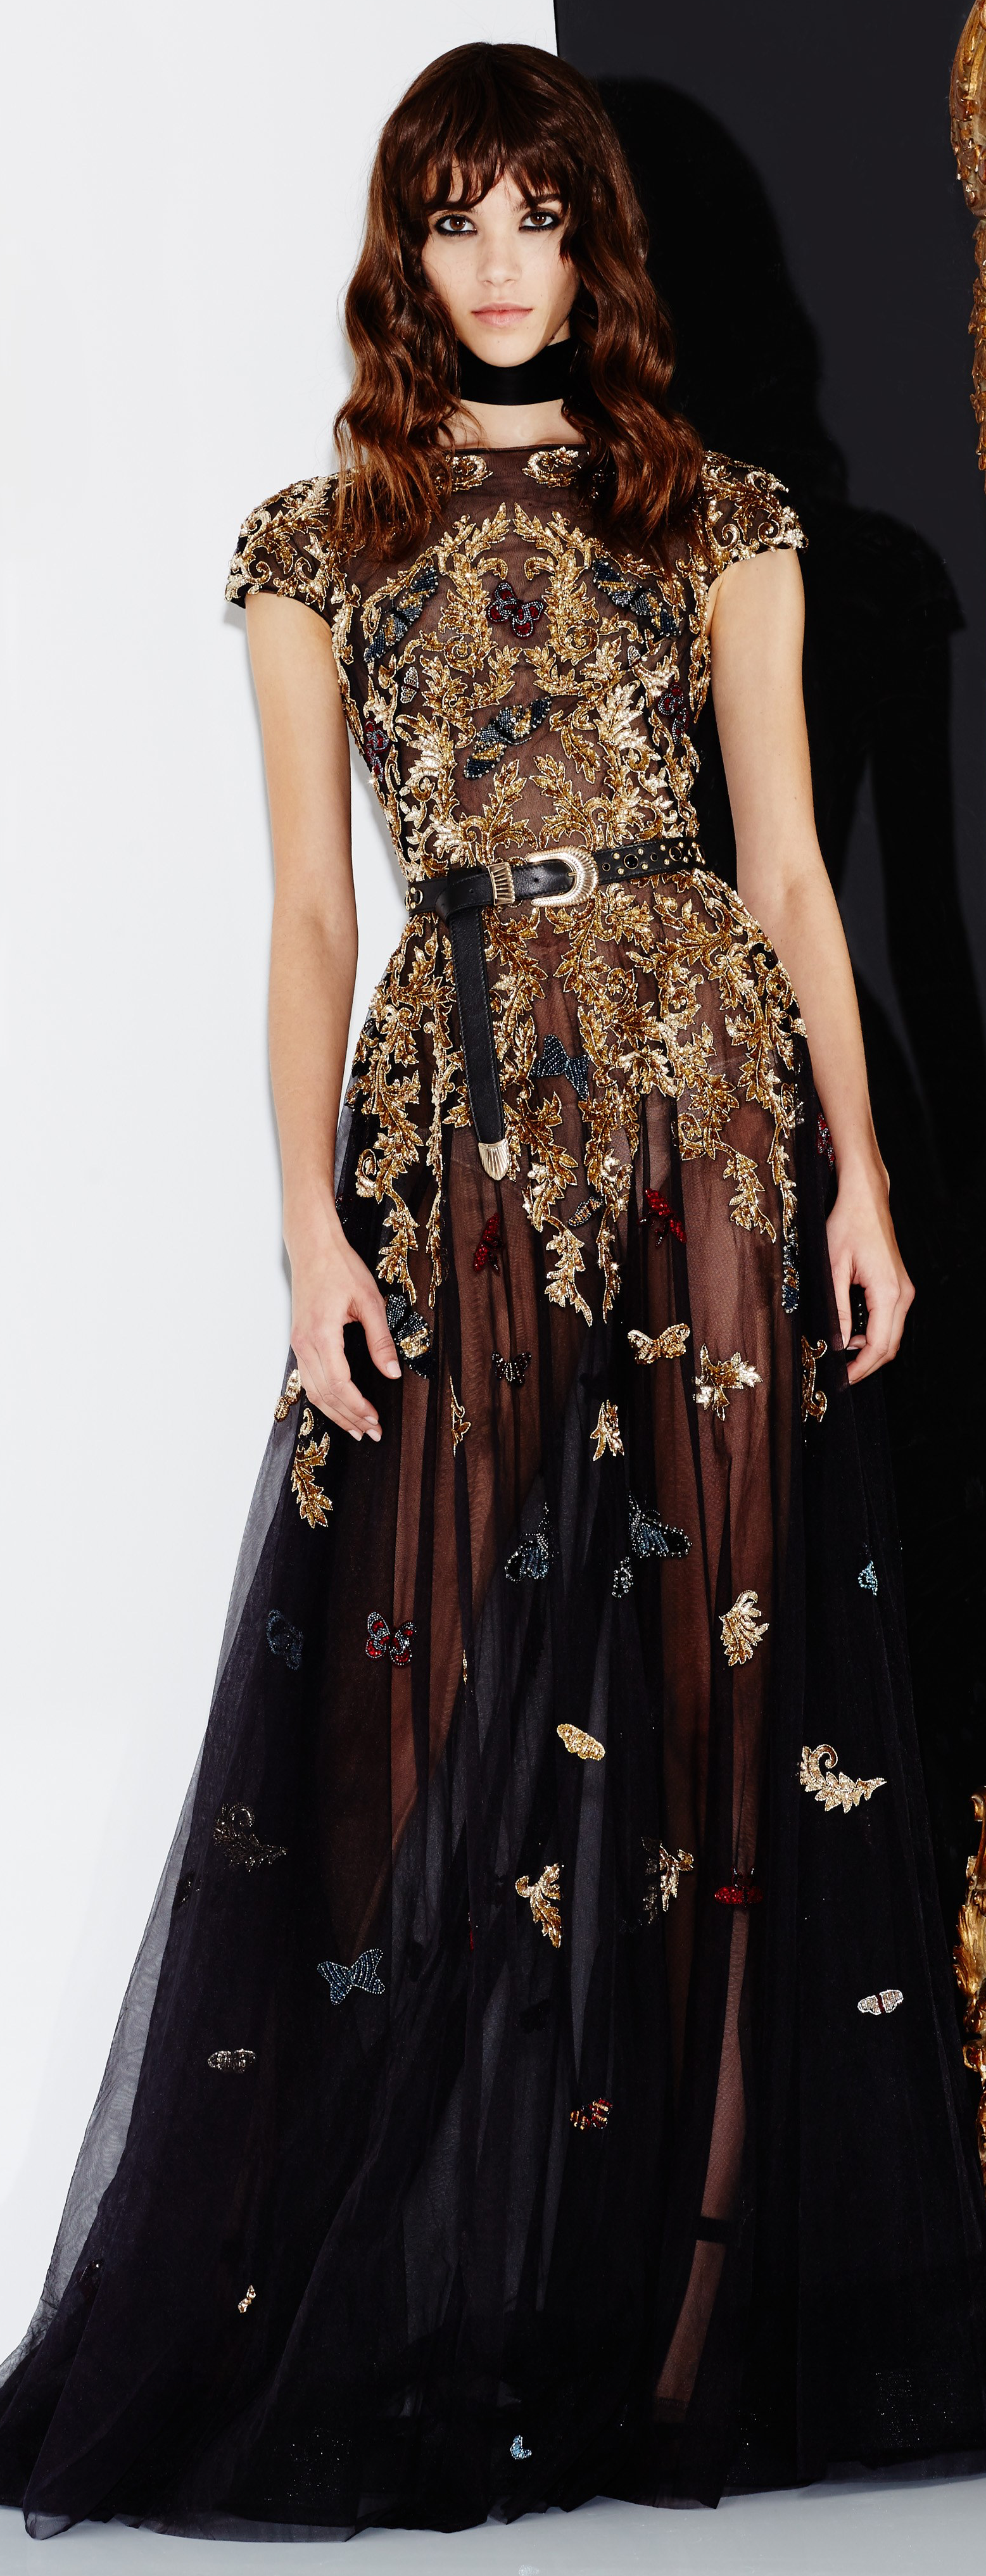 Fall 2016 Ready-to-Wear Zuhair Murad